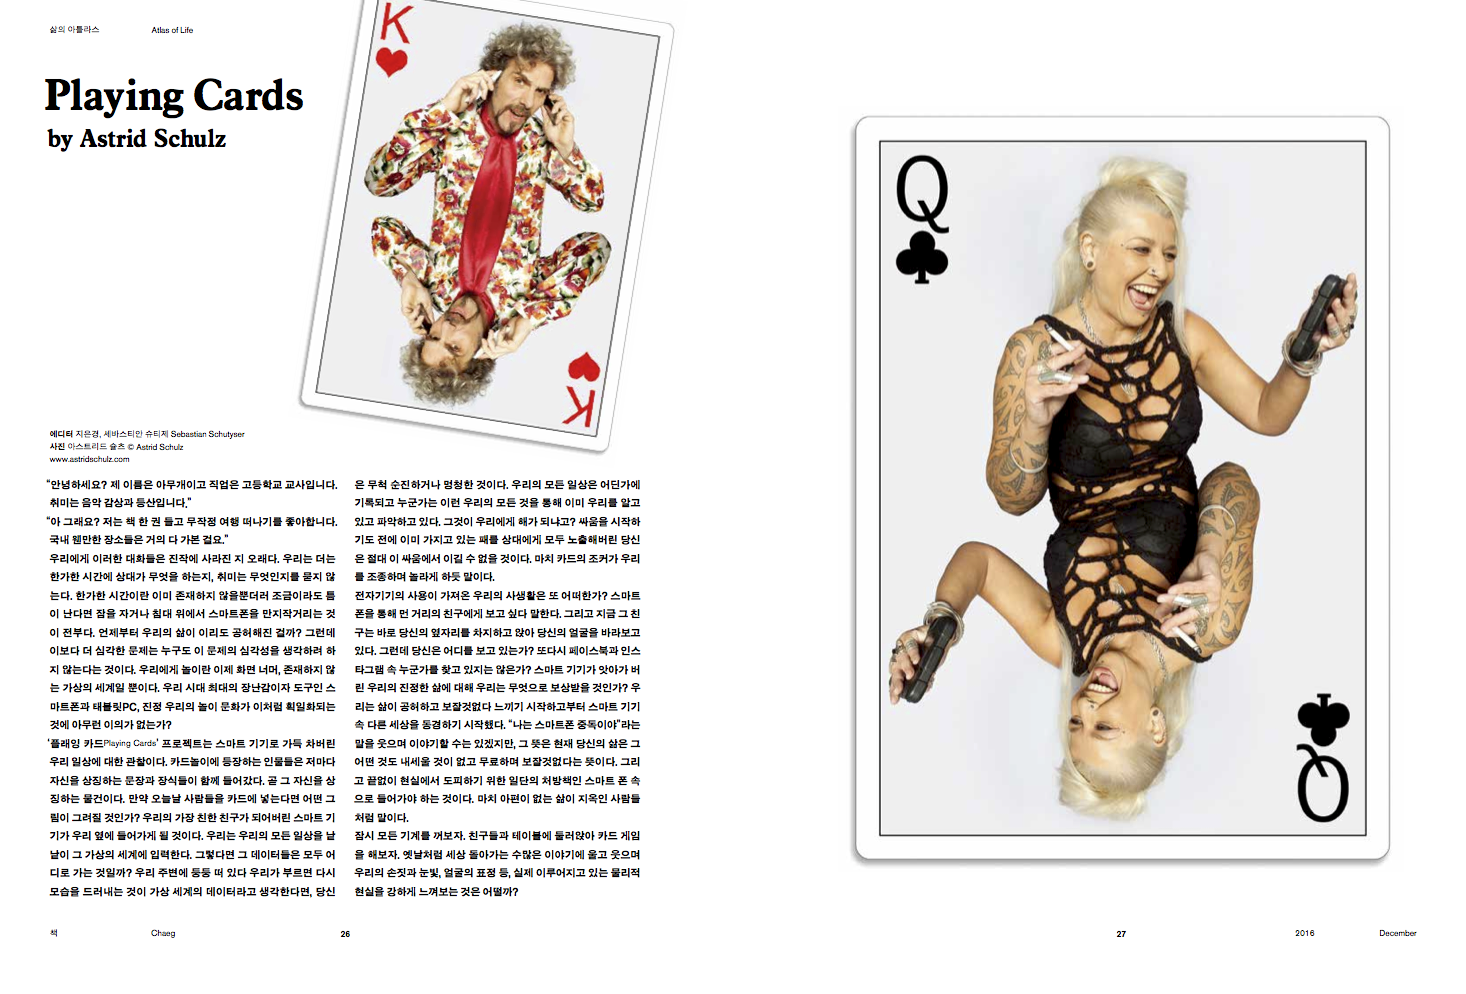 Chaeg: Playing Cards